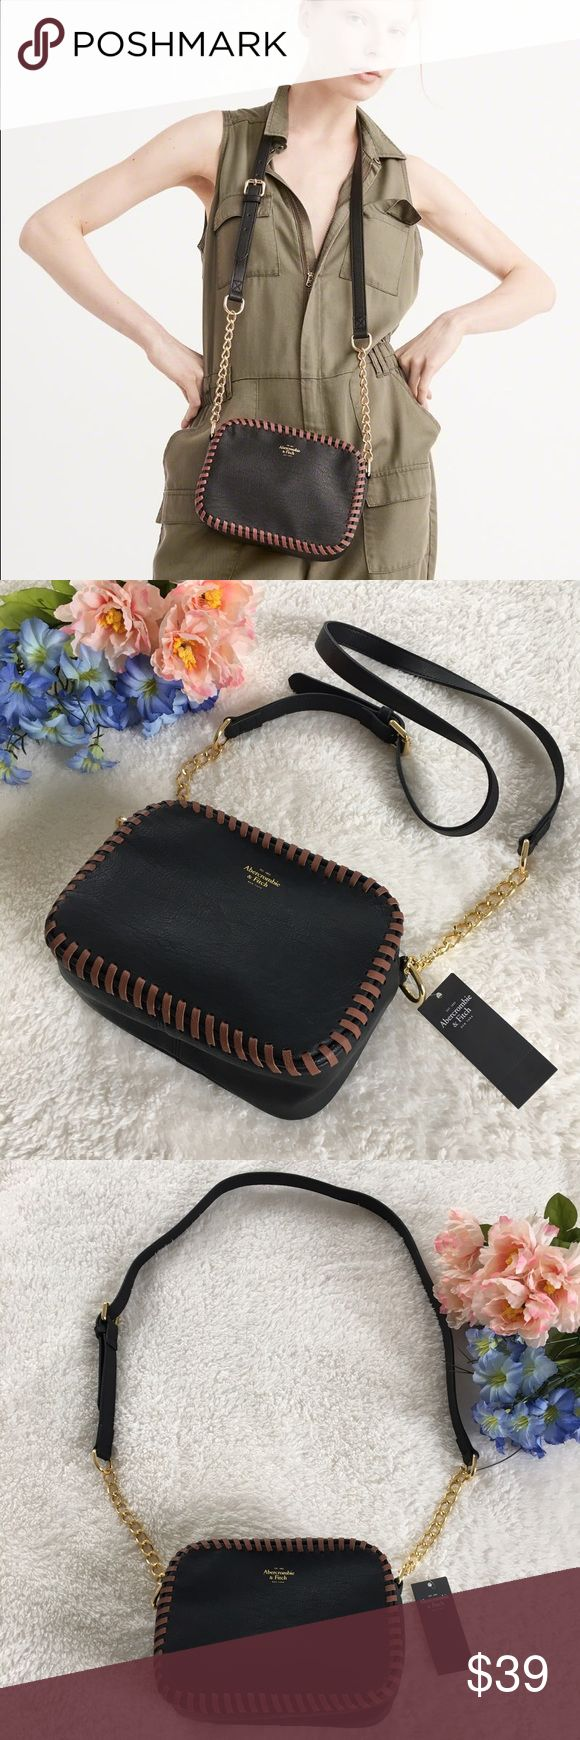 Abercrombie✨Chain Crossbody Bag✨ Very cute Abercrombie chain crossbody bag!  New with tags, never used!  Stitched design throughout with adjustable strap and zipper closure.  Perfect size and lightweight. Abercrombie & Fitch Bags Crossbody Bags